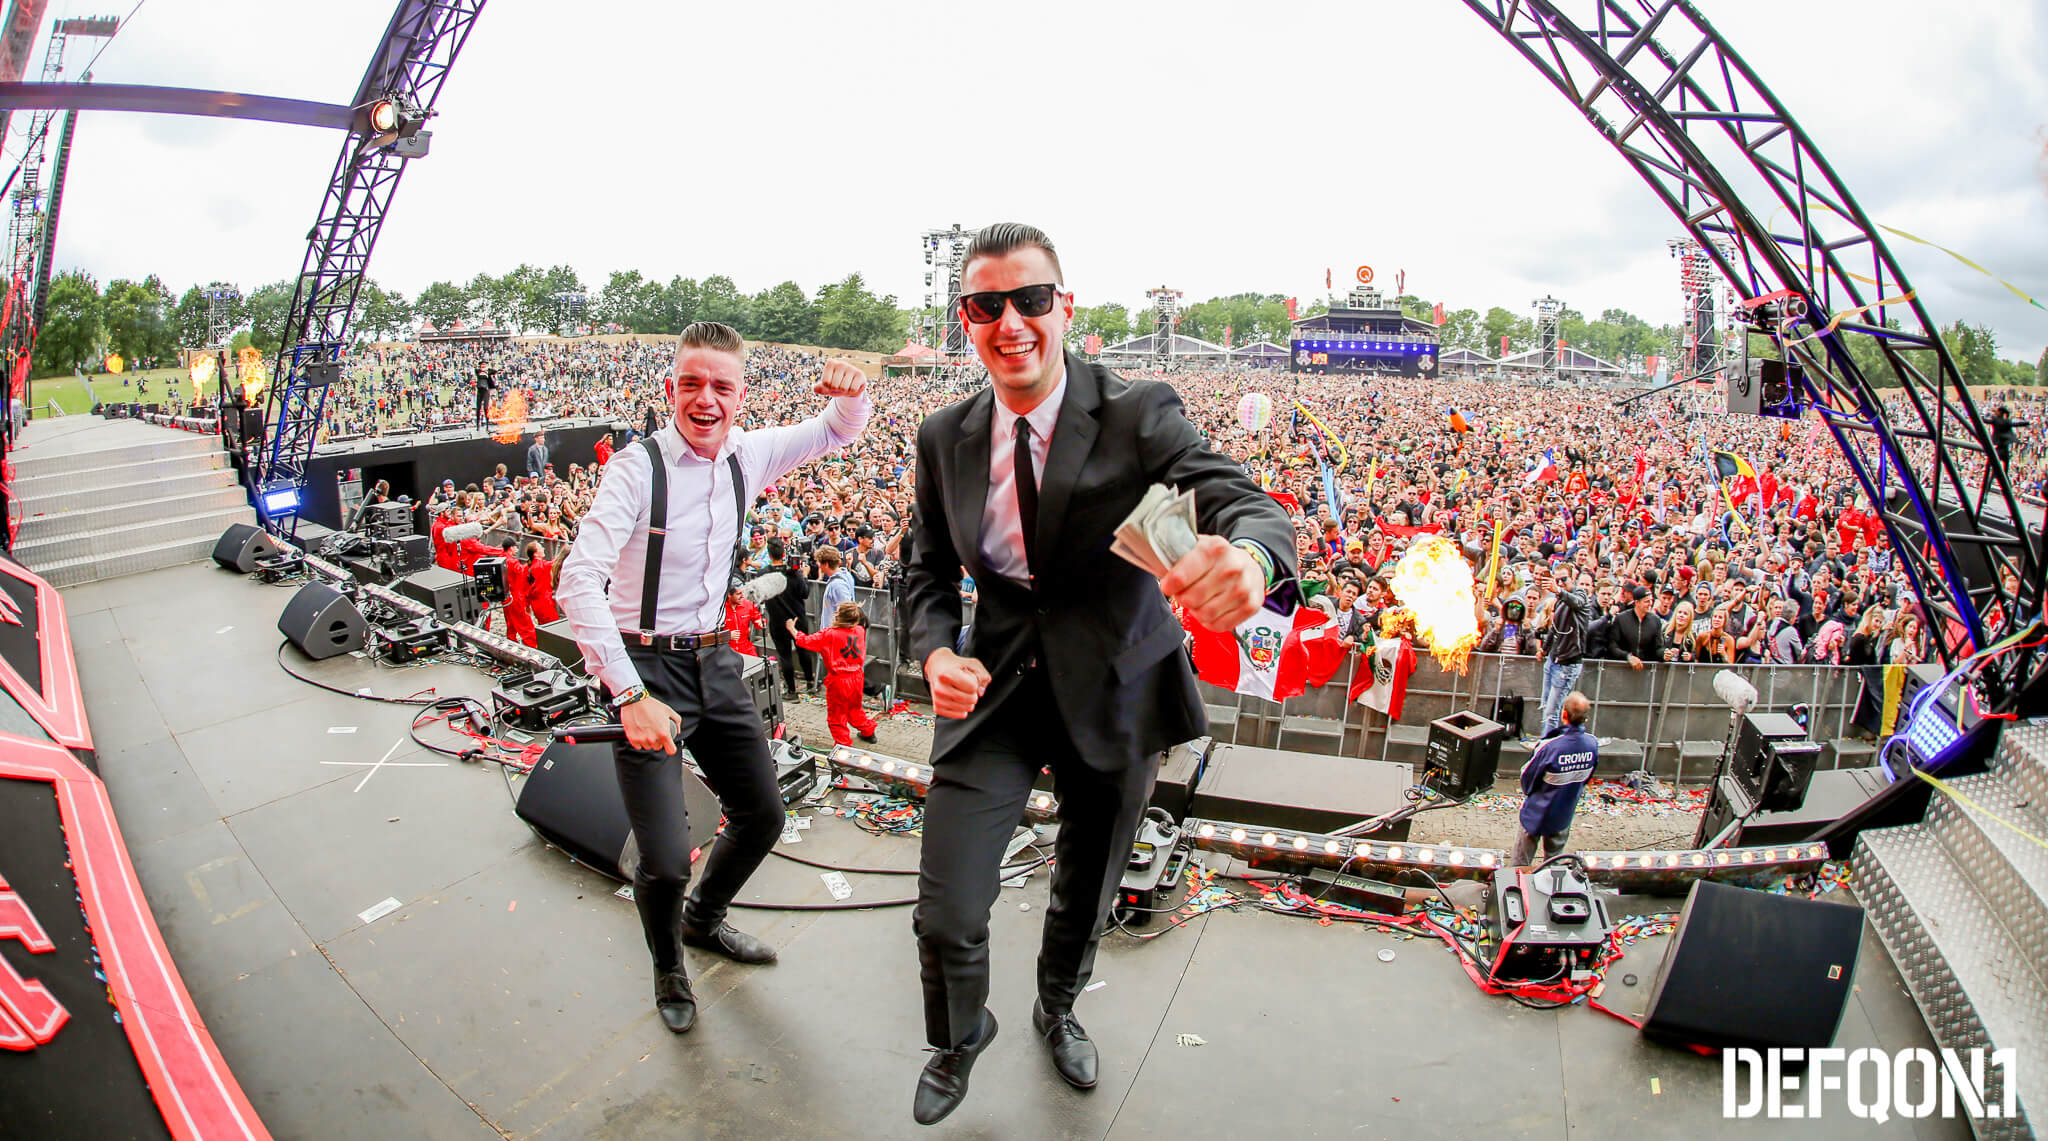 Ransom live on stage at Defqon.1